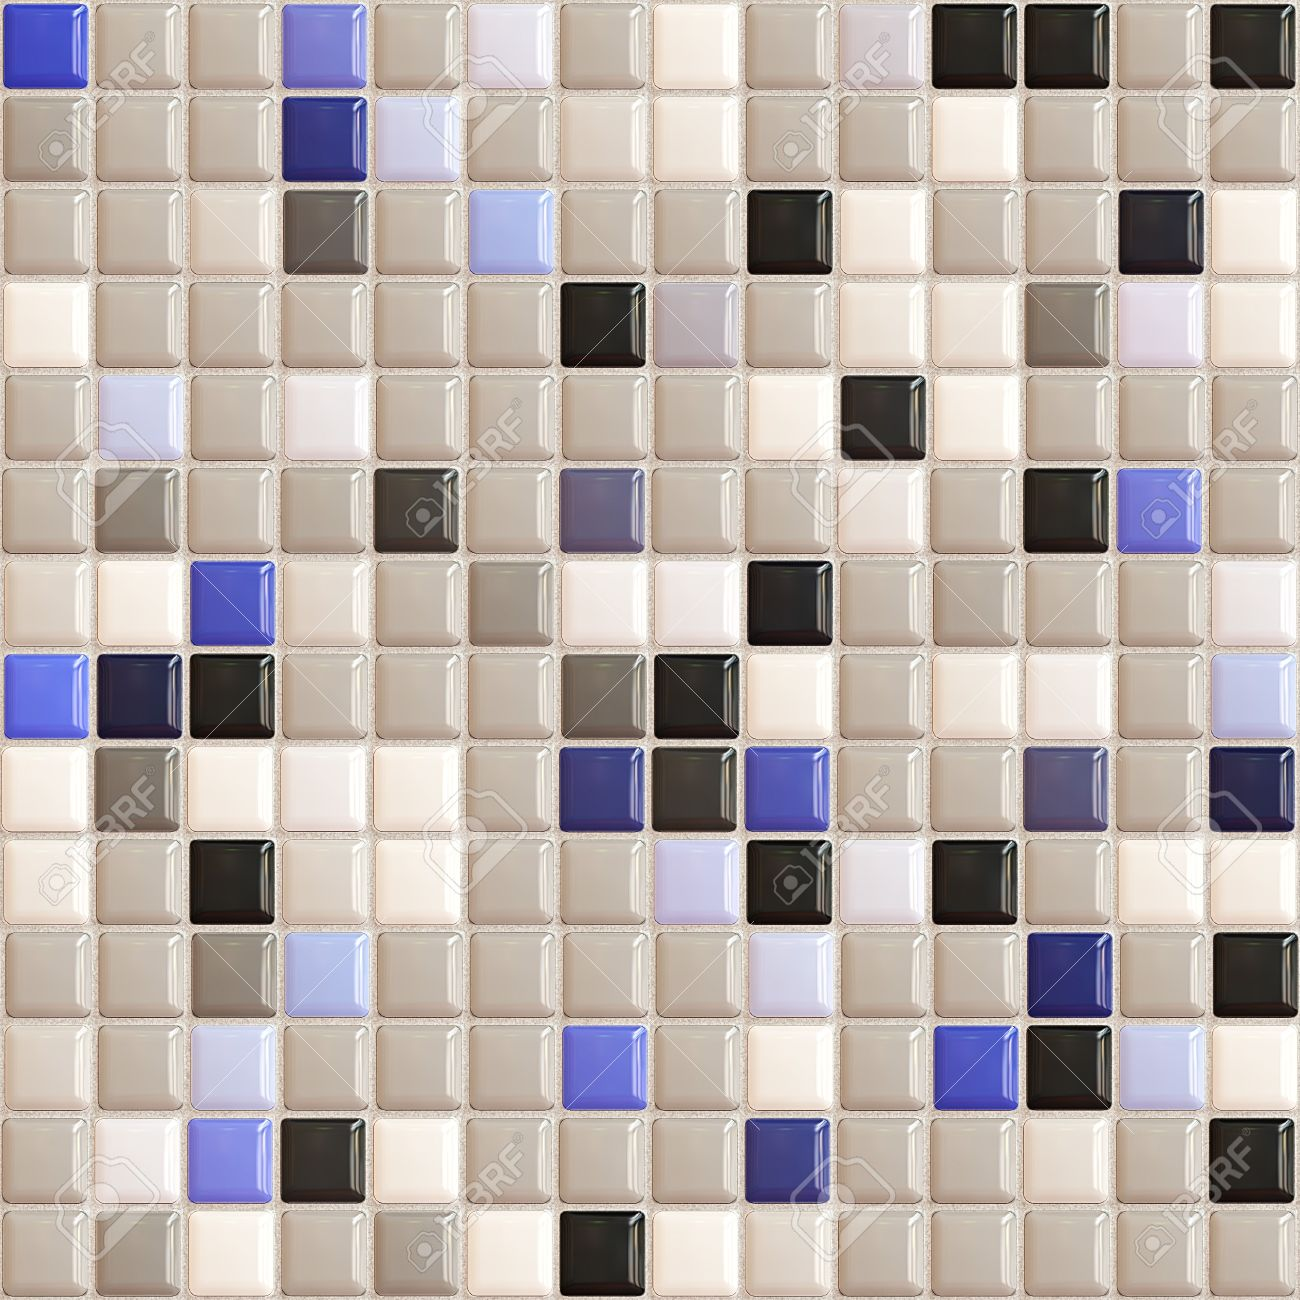 Bathroom tiles texture - Seamless Small Tiles Texture Stock Photo 9817527